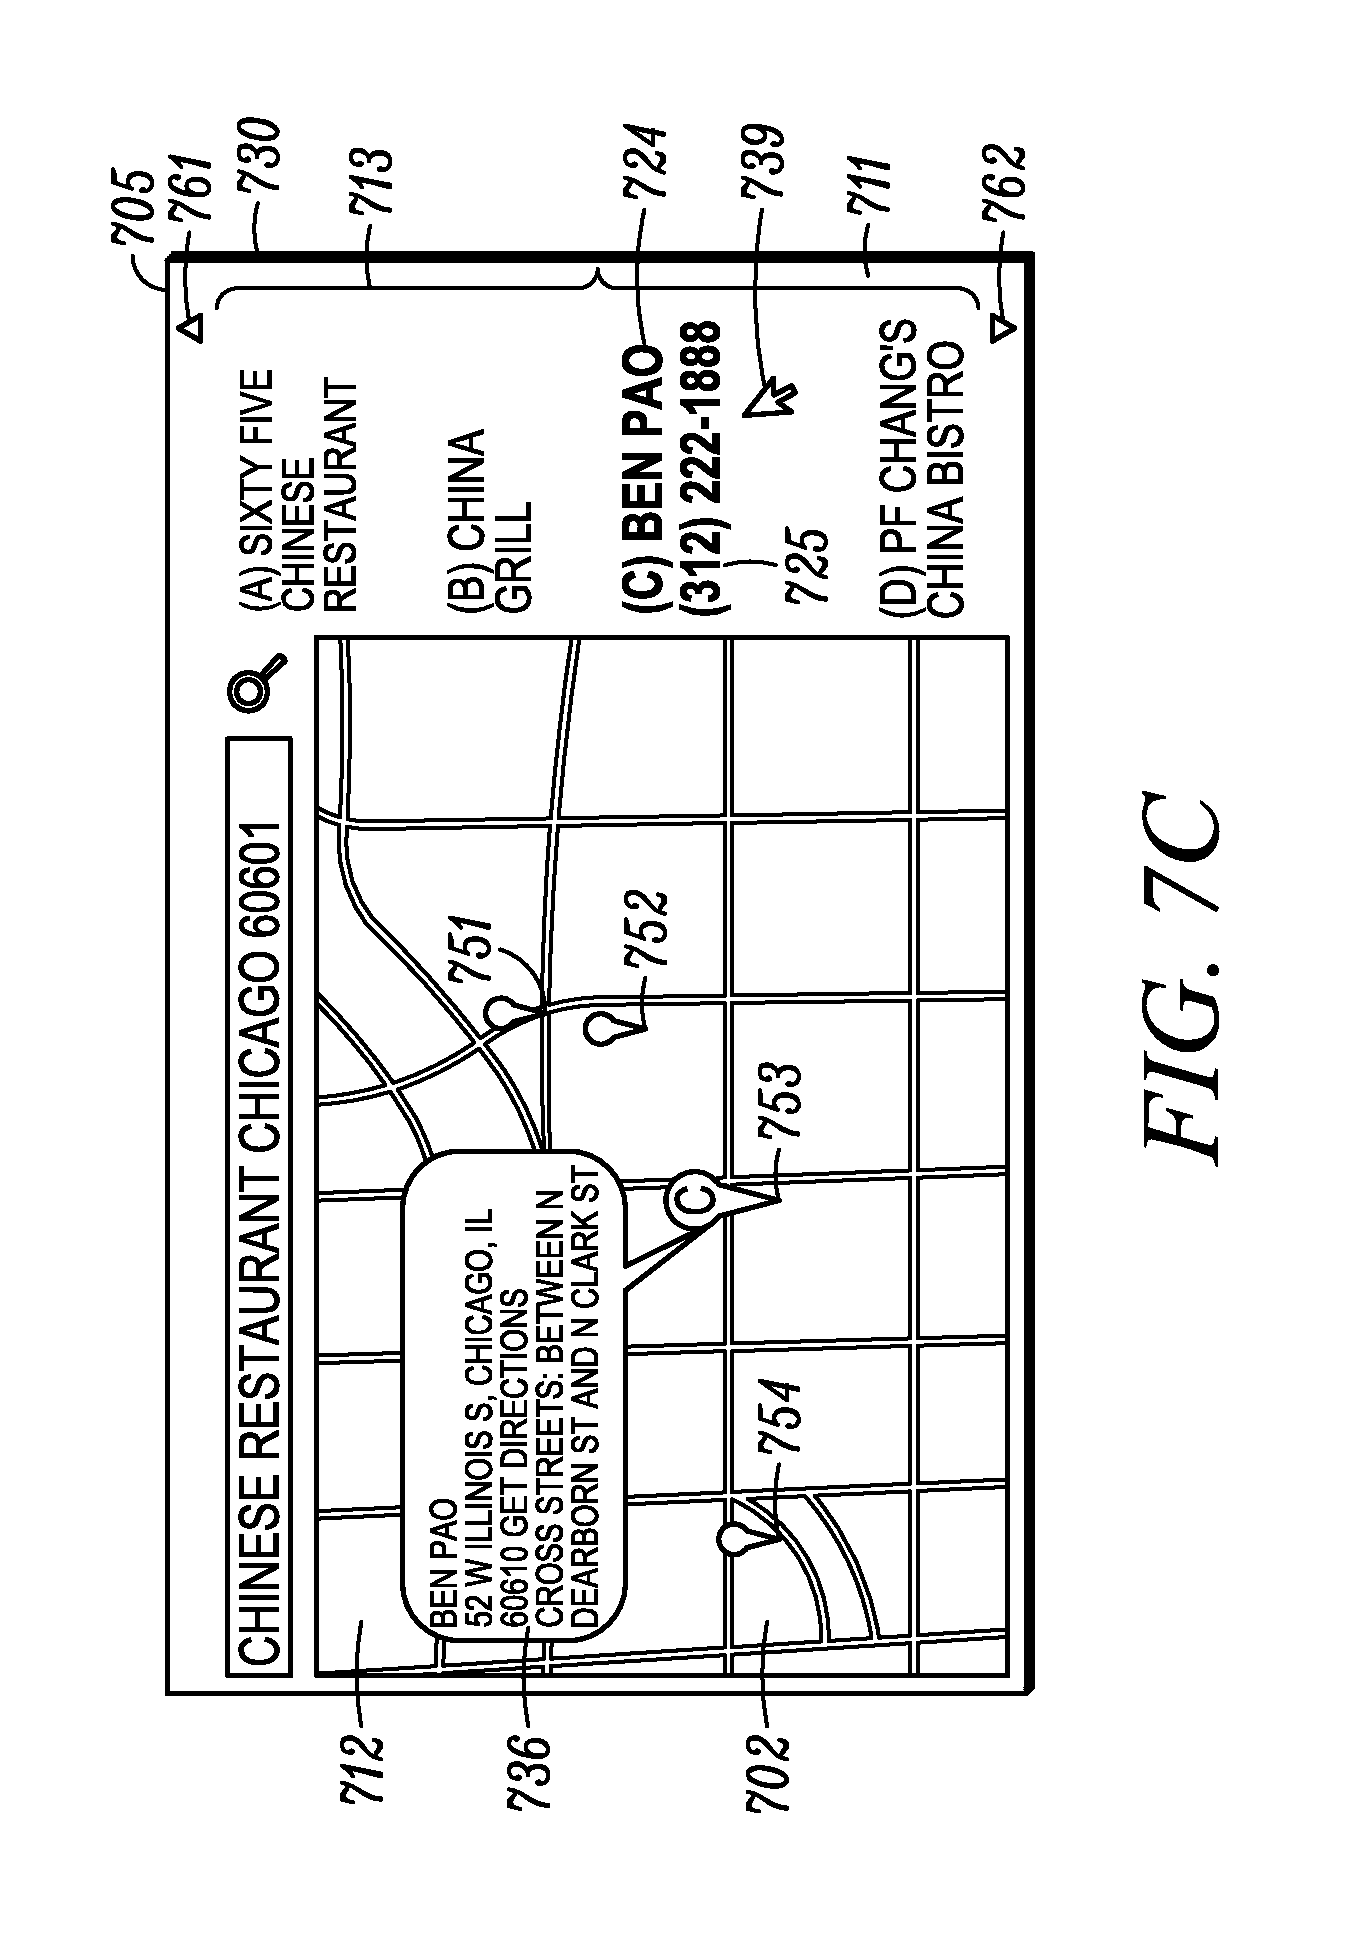 patent us20110154260 method and apparatus for displaying patent drawing